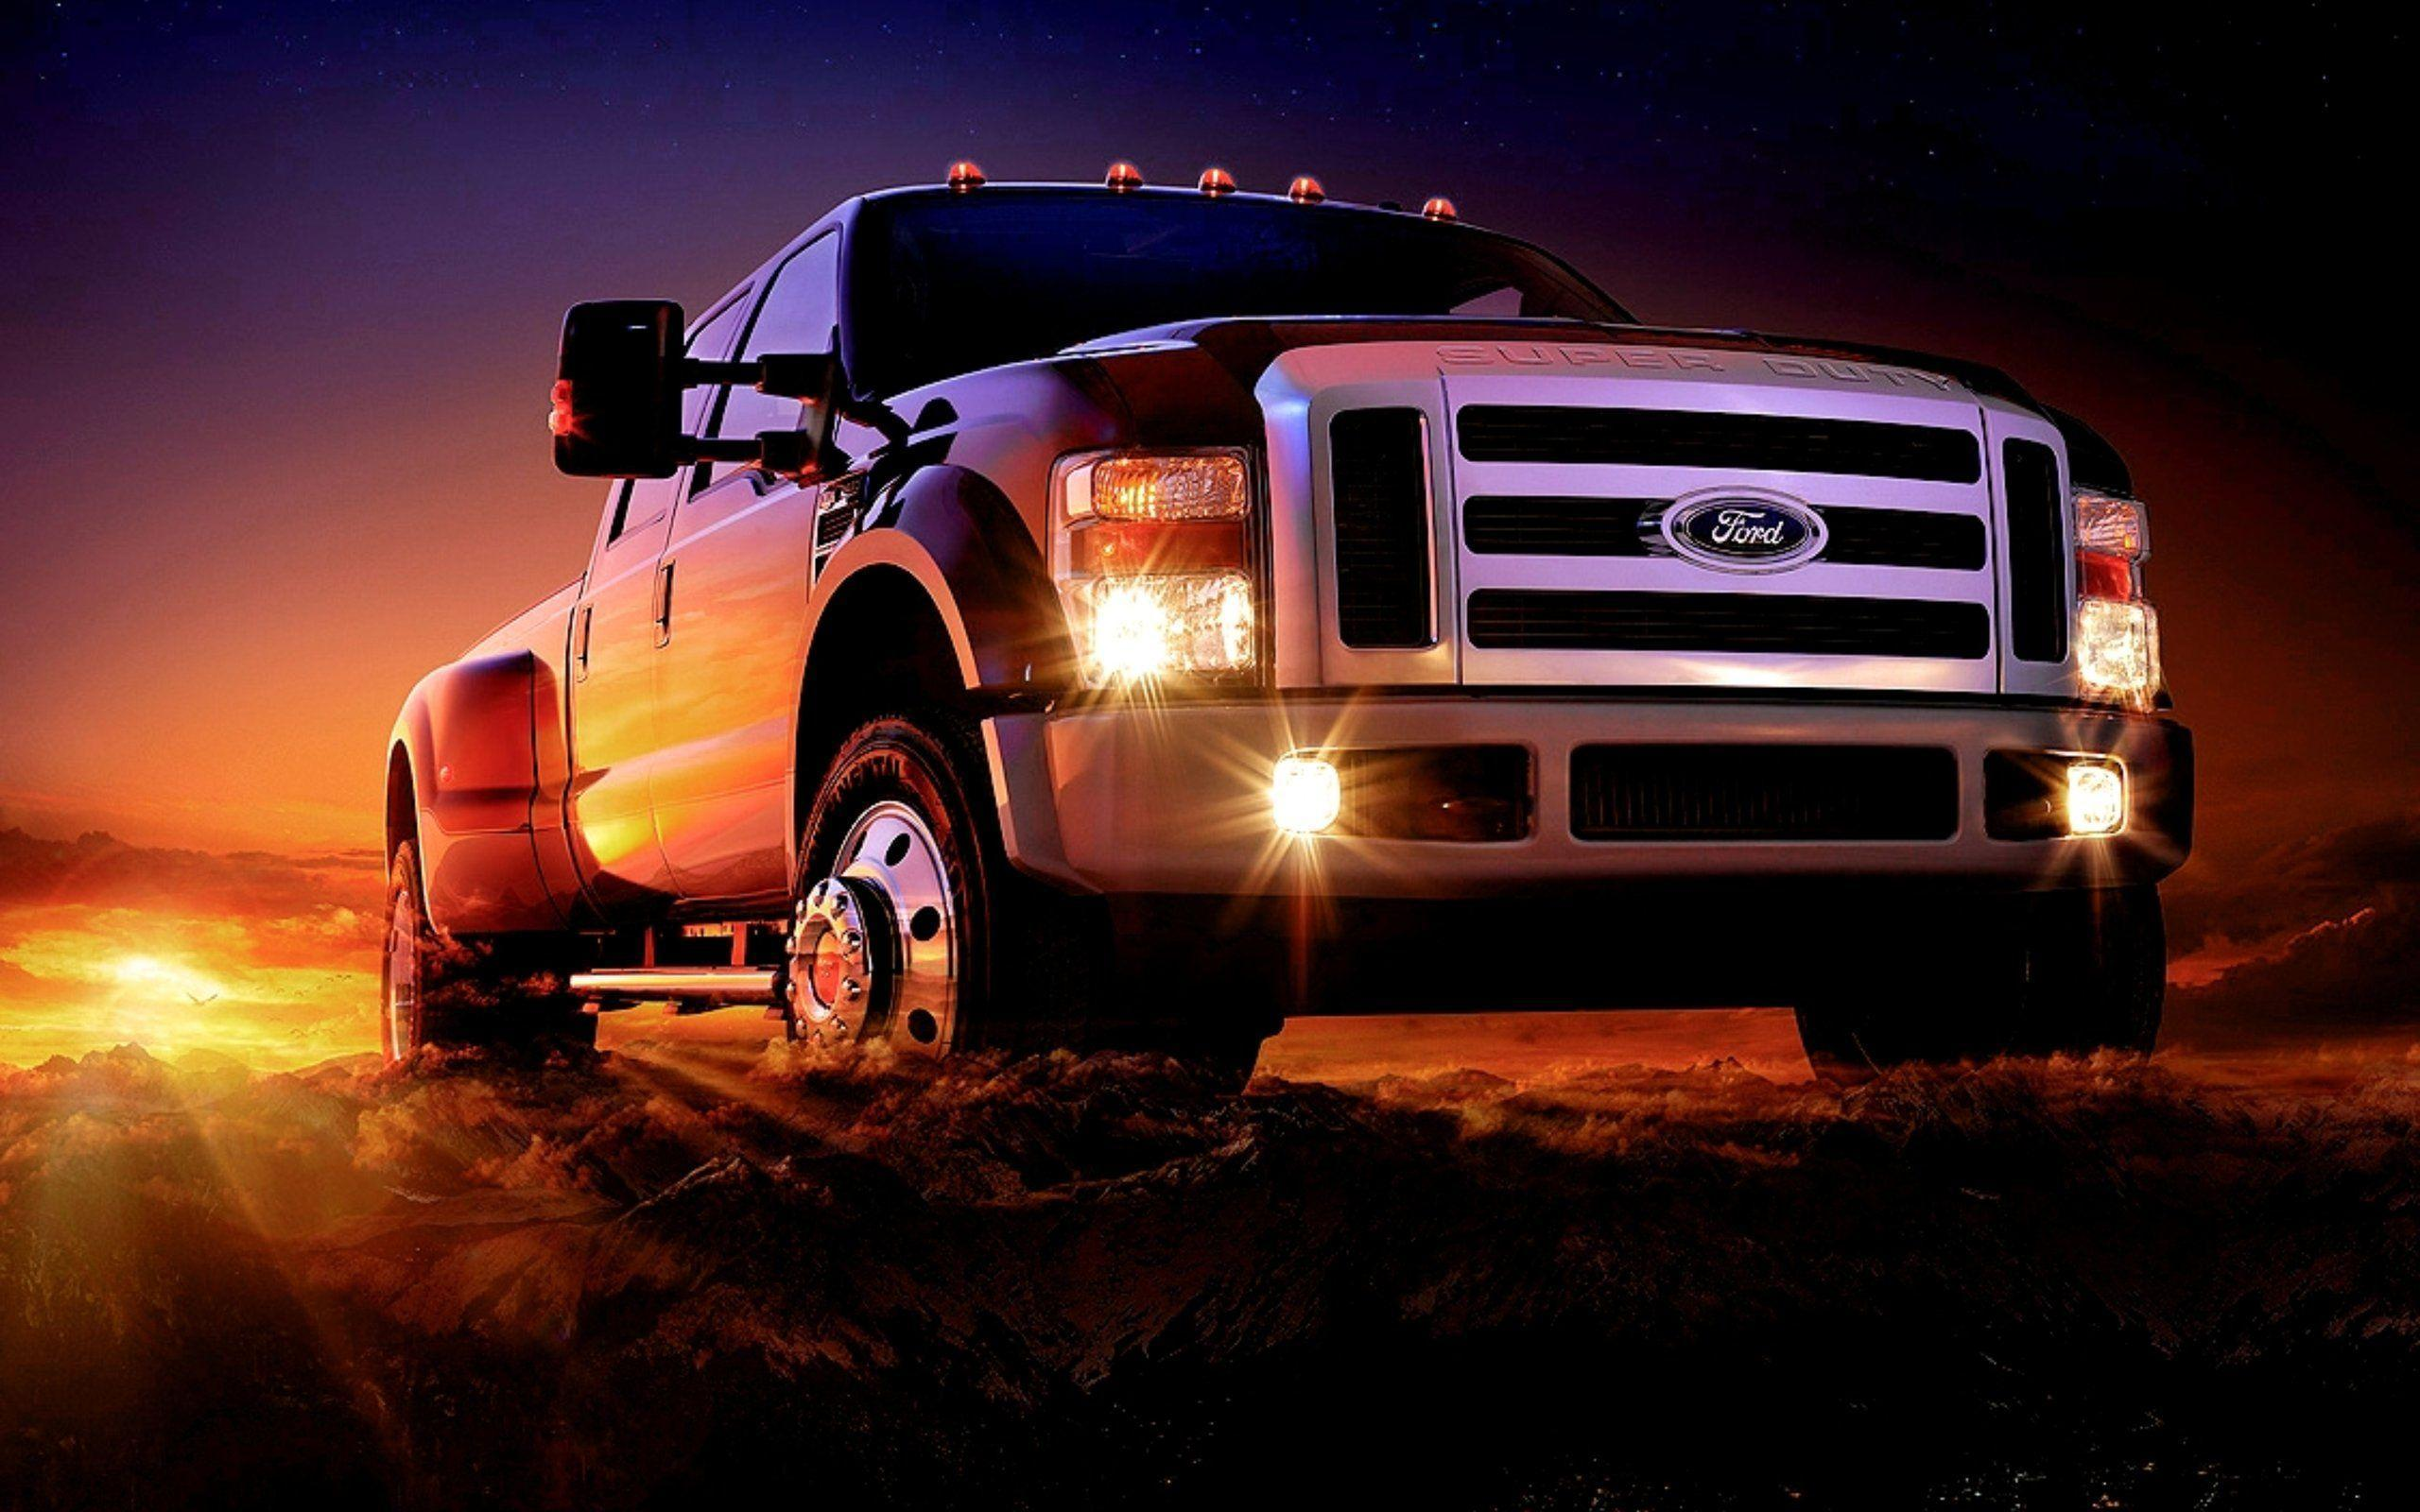 Ford Truck Wallpapers   Top Ford Truck Backgrounds 2560x1600